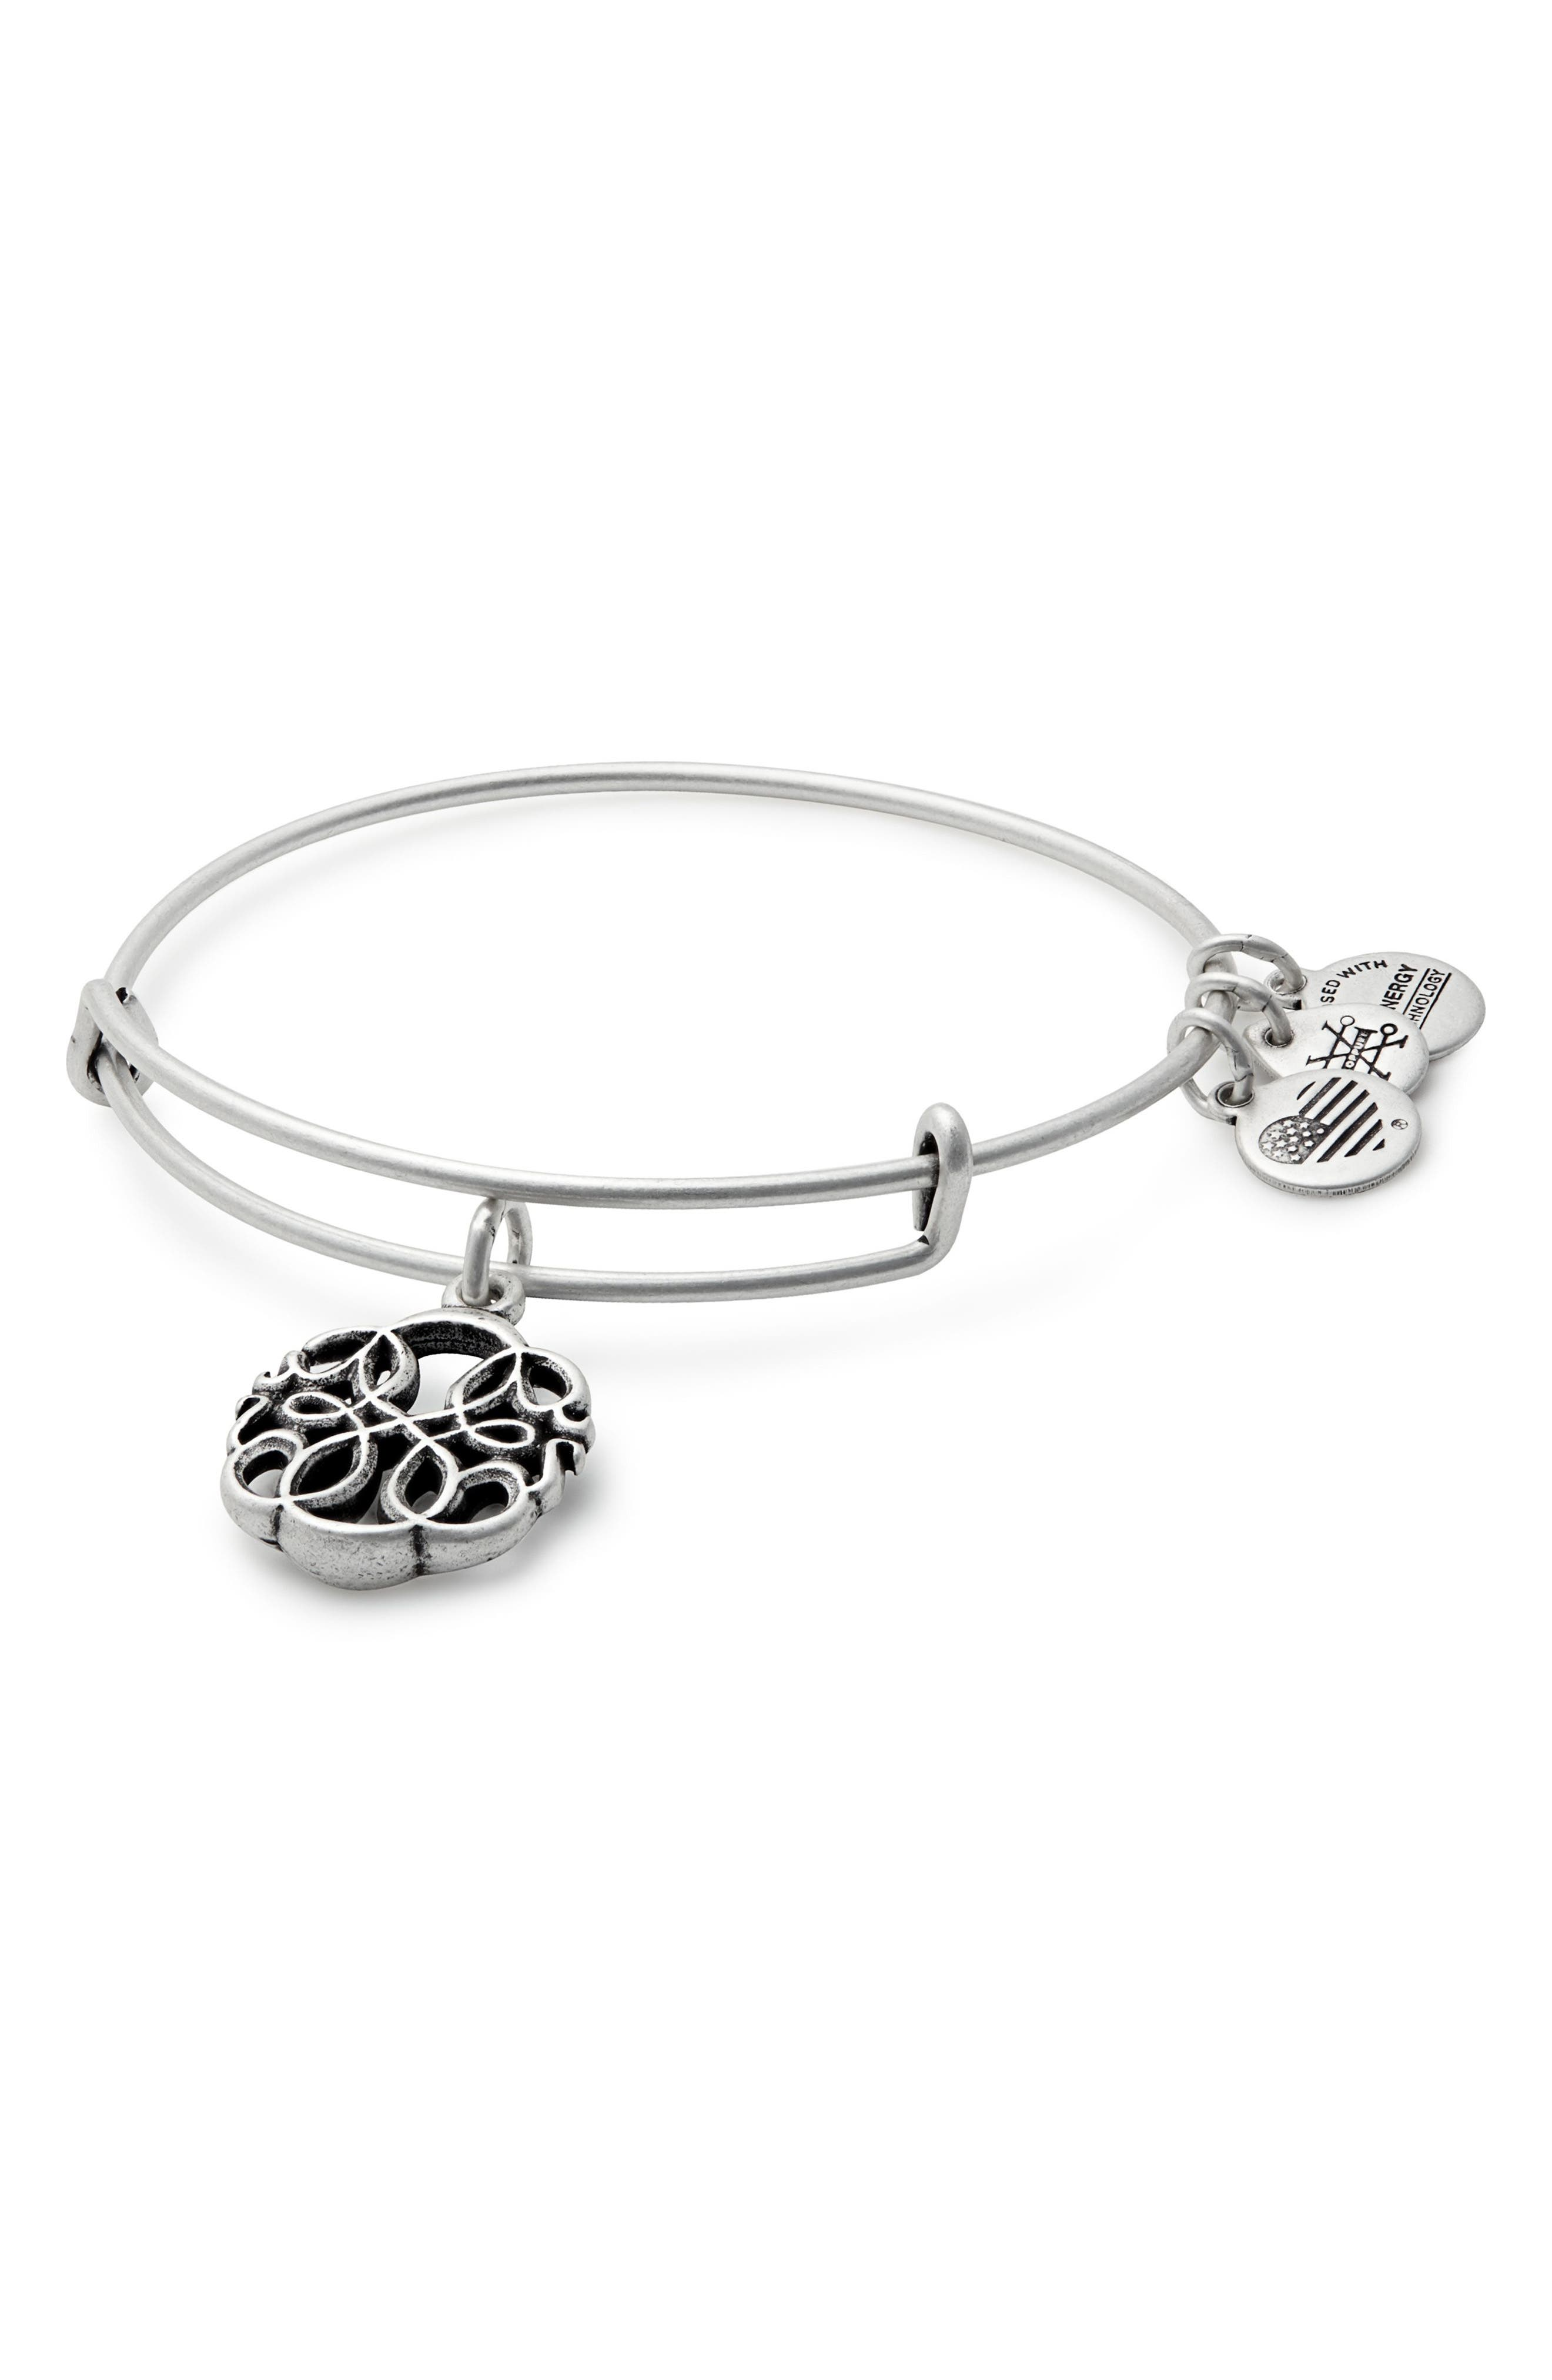 Path of Life Adjustable Wire Bangle,                             Main thumbnail 1, color,                             RUSSIAN SILVER